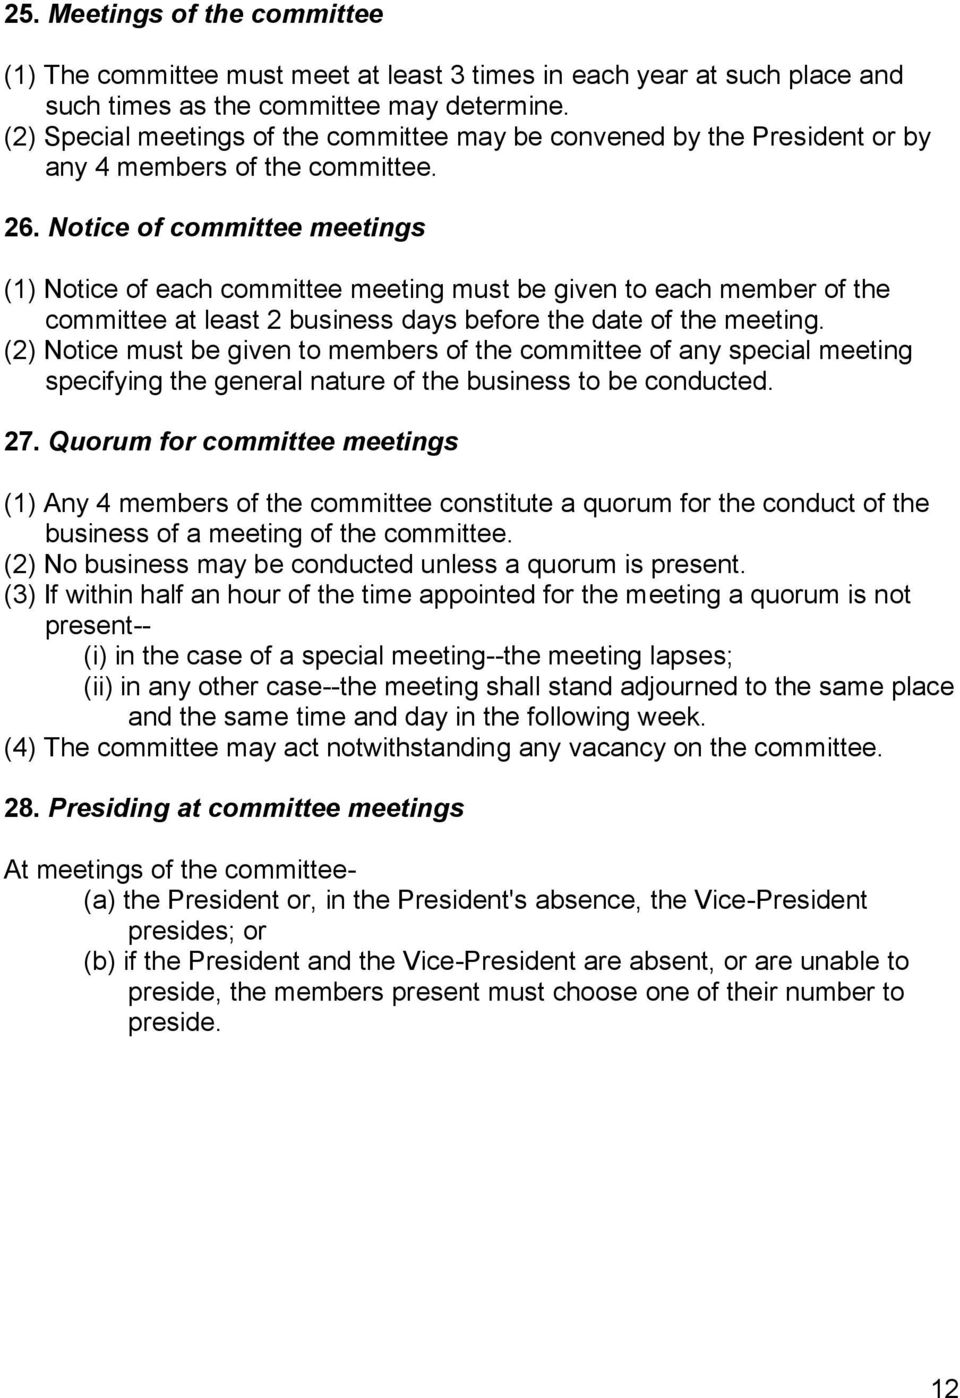 Notice of committee meetings (1) Notice of each committee meeting must be given to each member of the committee at least 2 business days before the date of the meeting.